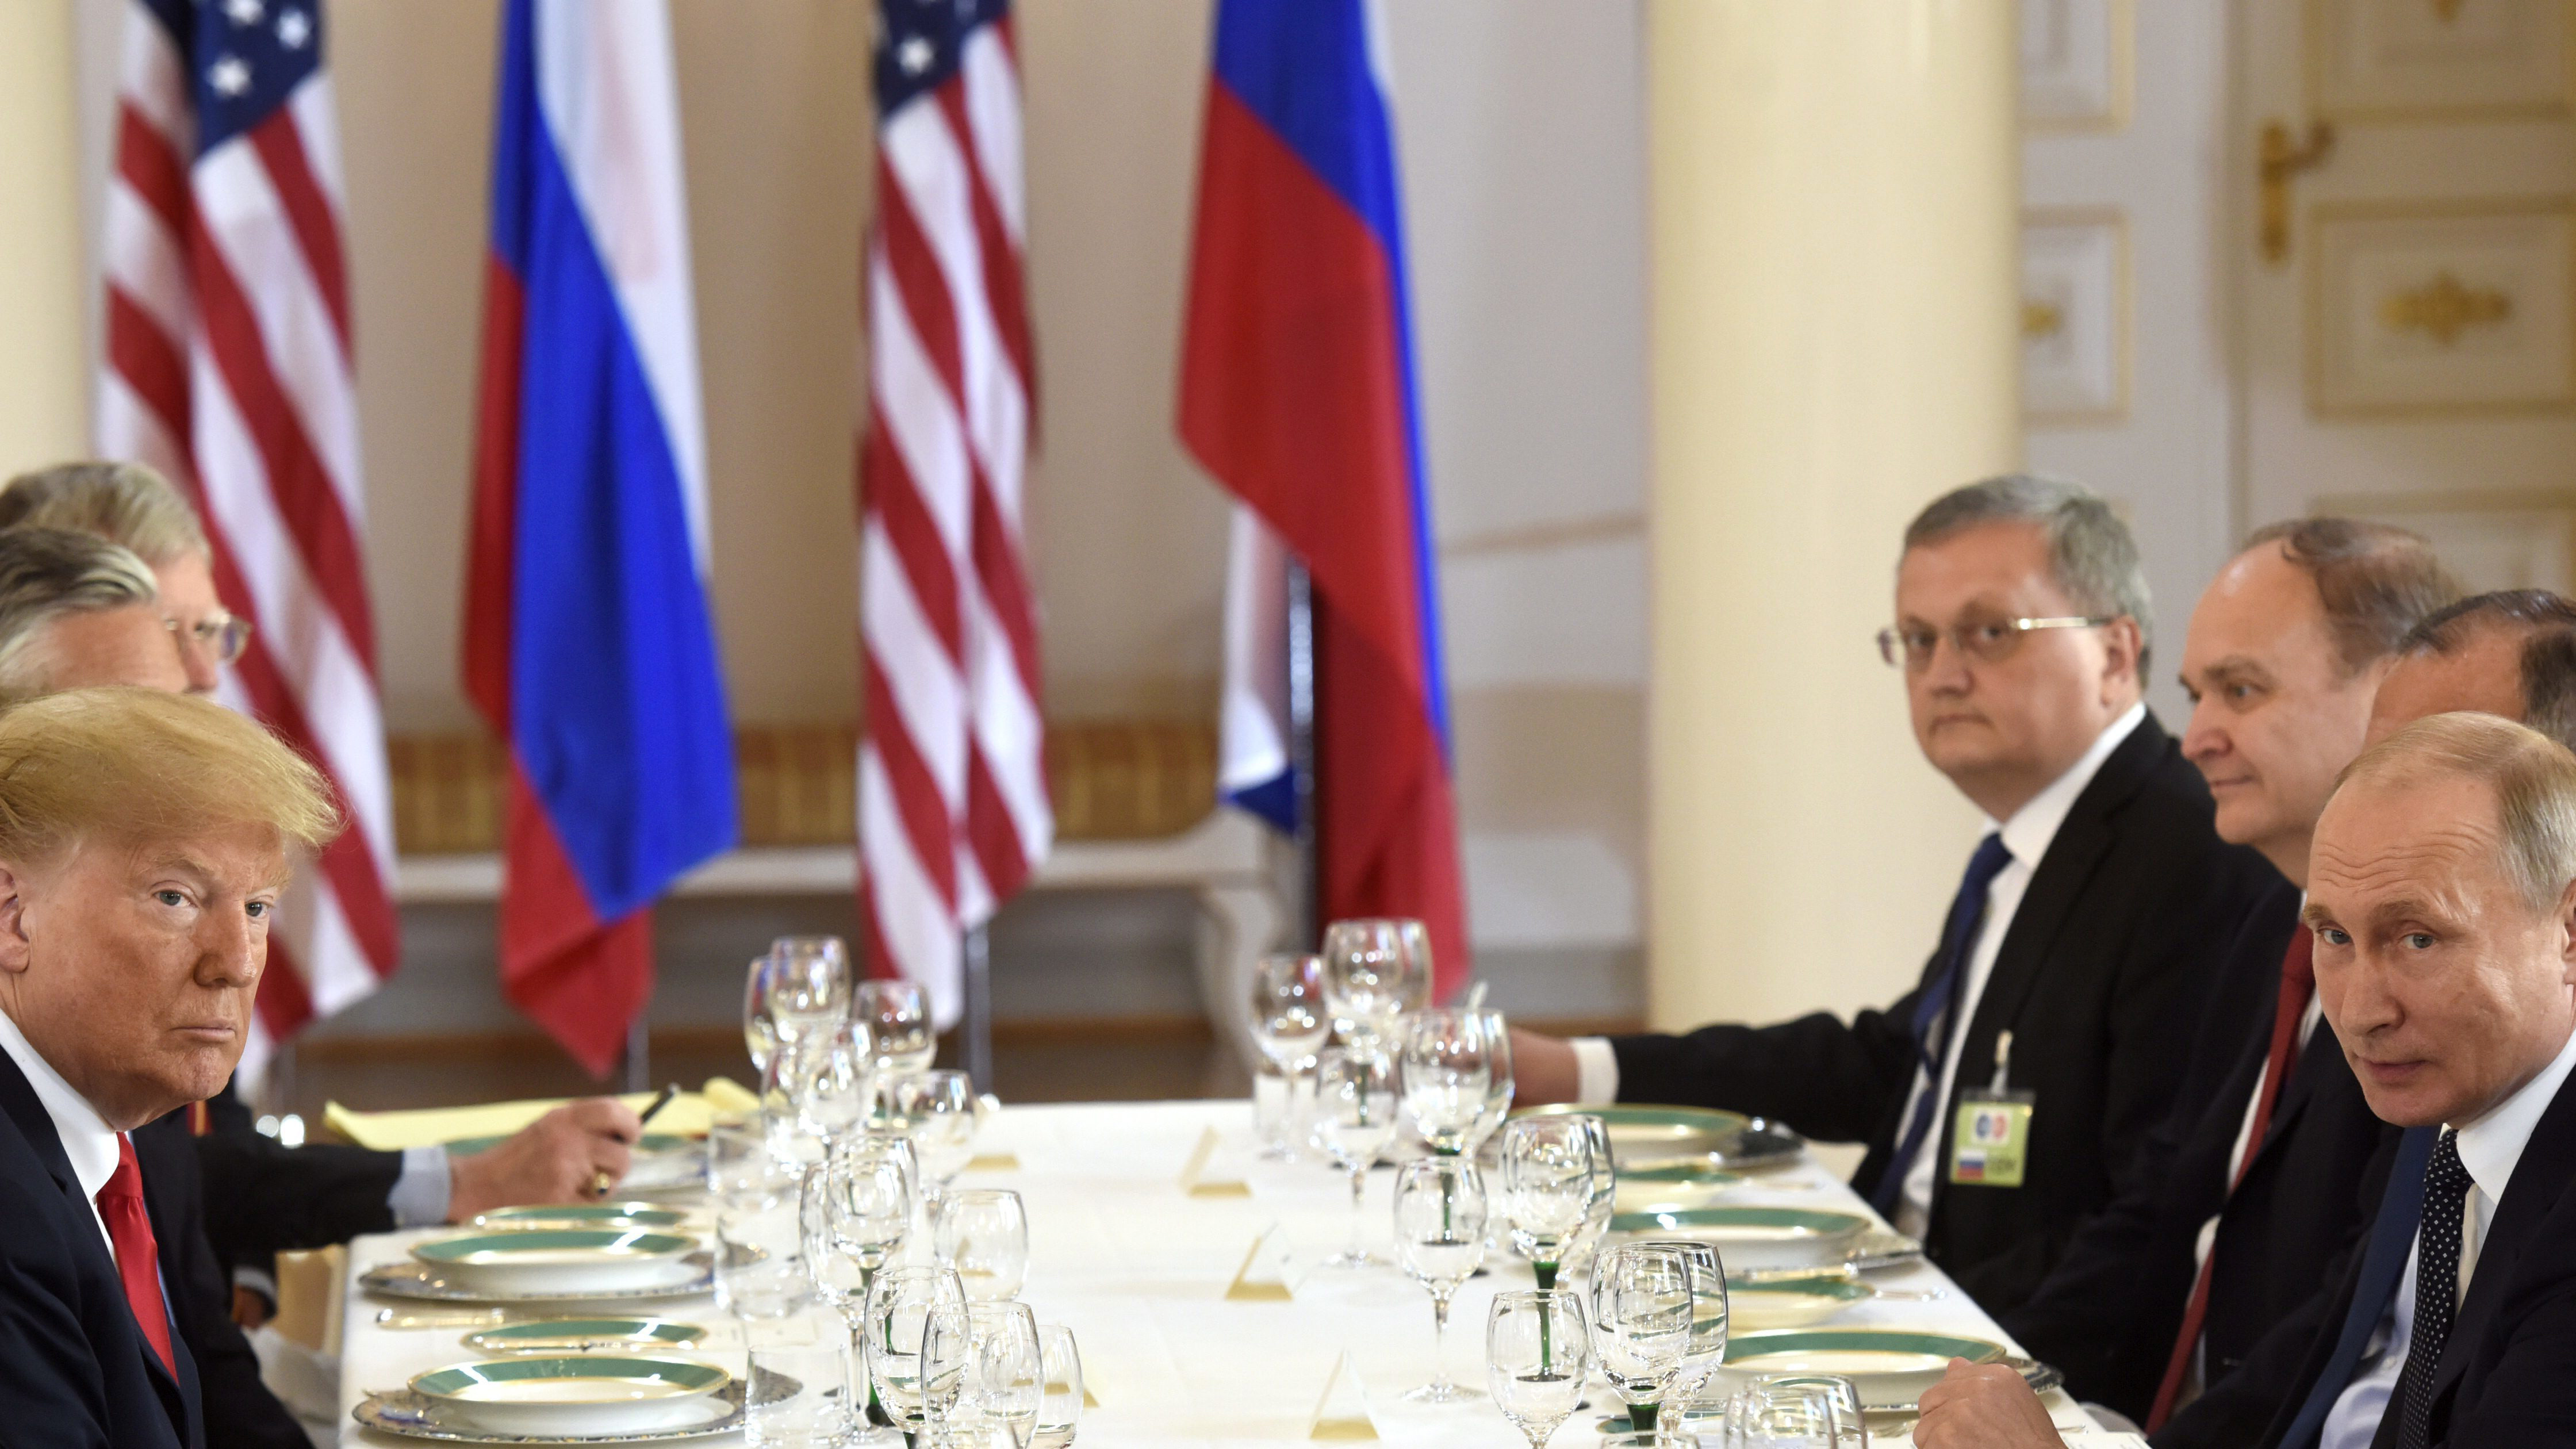 US President Of The United States America Donald Trump Left And Russias Vladimir Putin Sit Opposite Each Other During Their Working Lunch